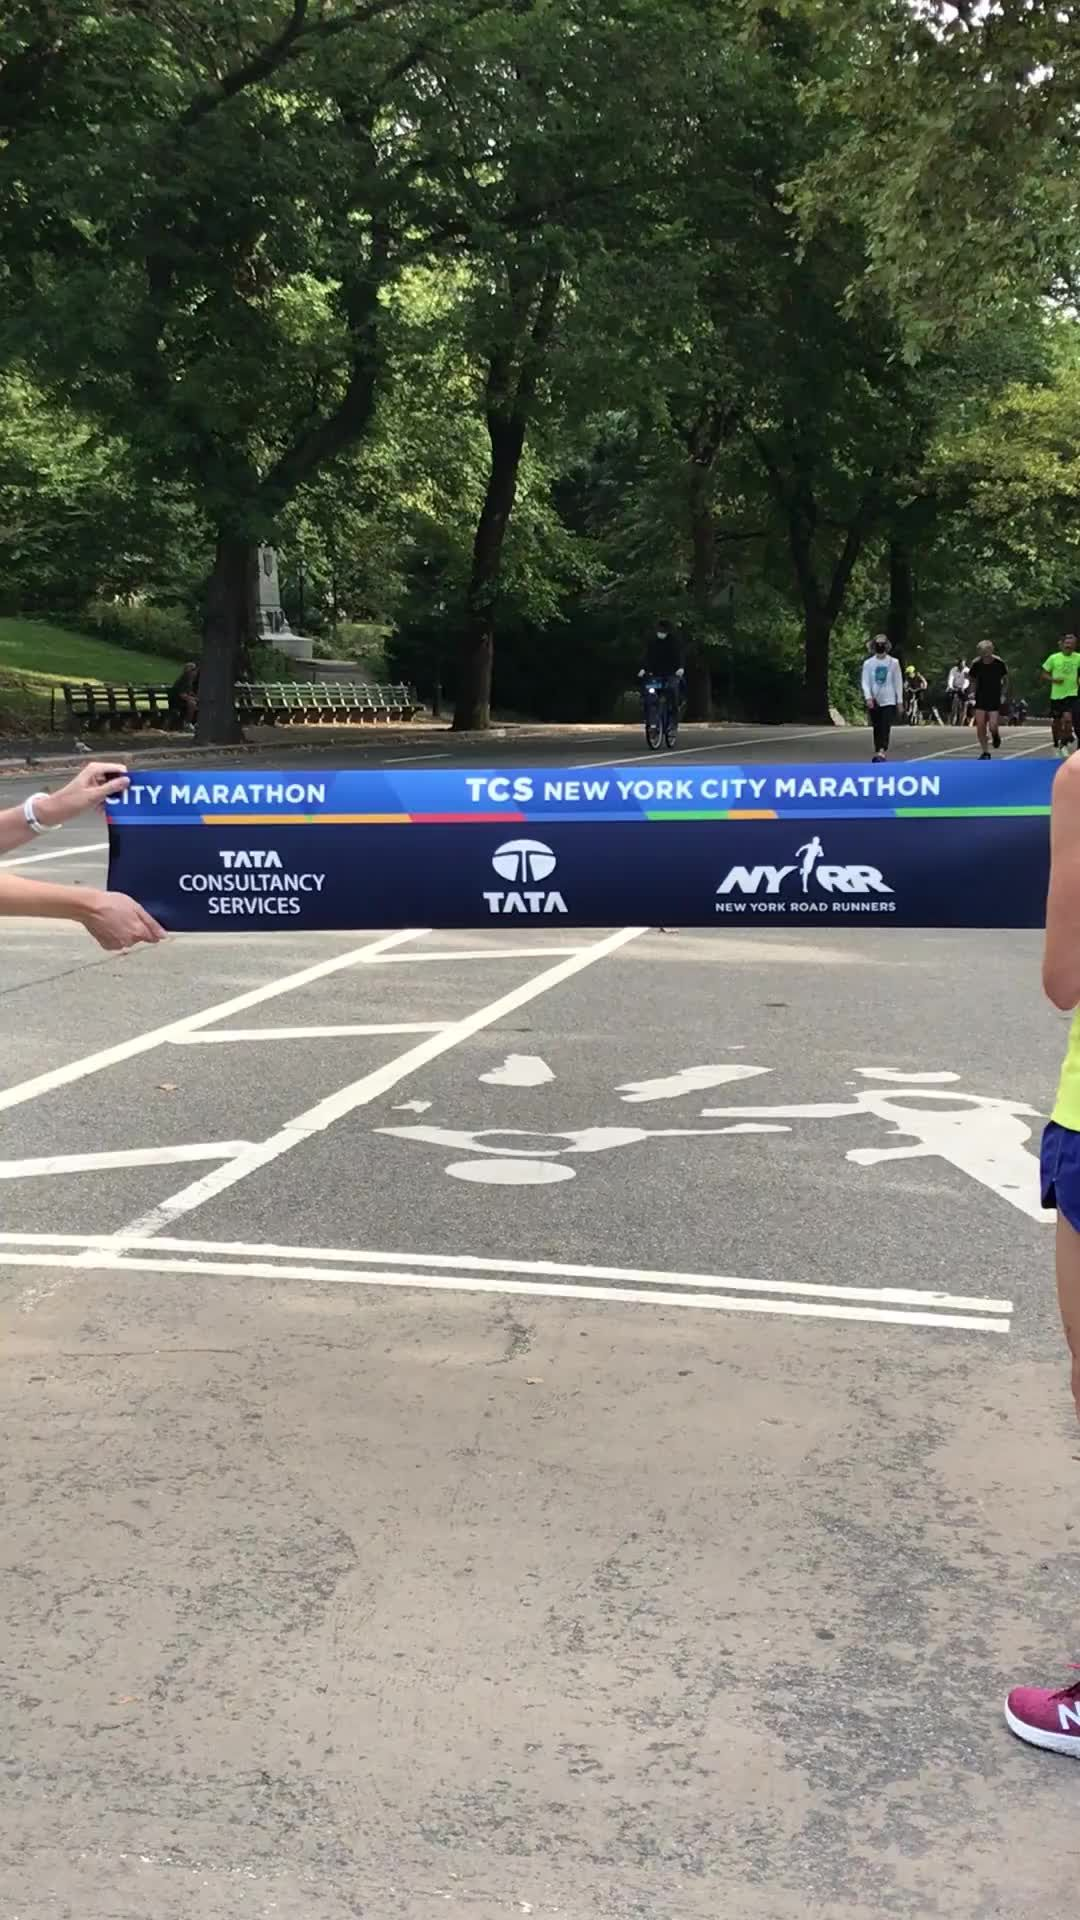 First-Ever NYC Marathon Champ Runs a Lap on the Original Course 50 Years Later